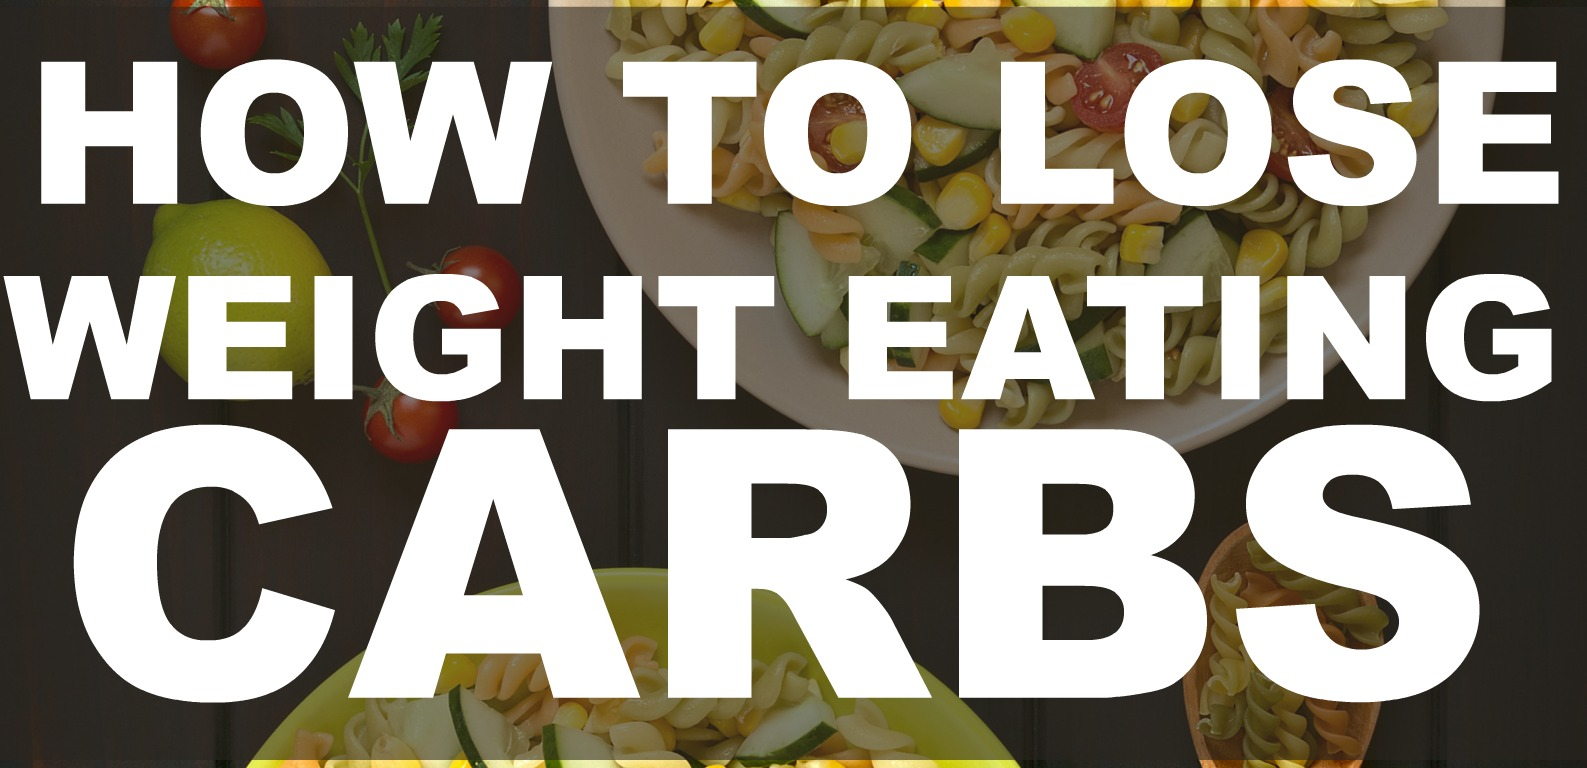 How to Lose Weight Eating Carbs banner